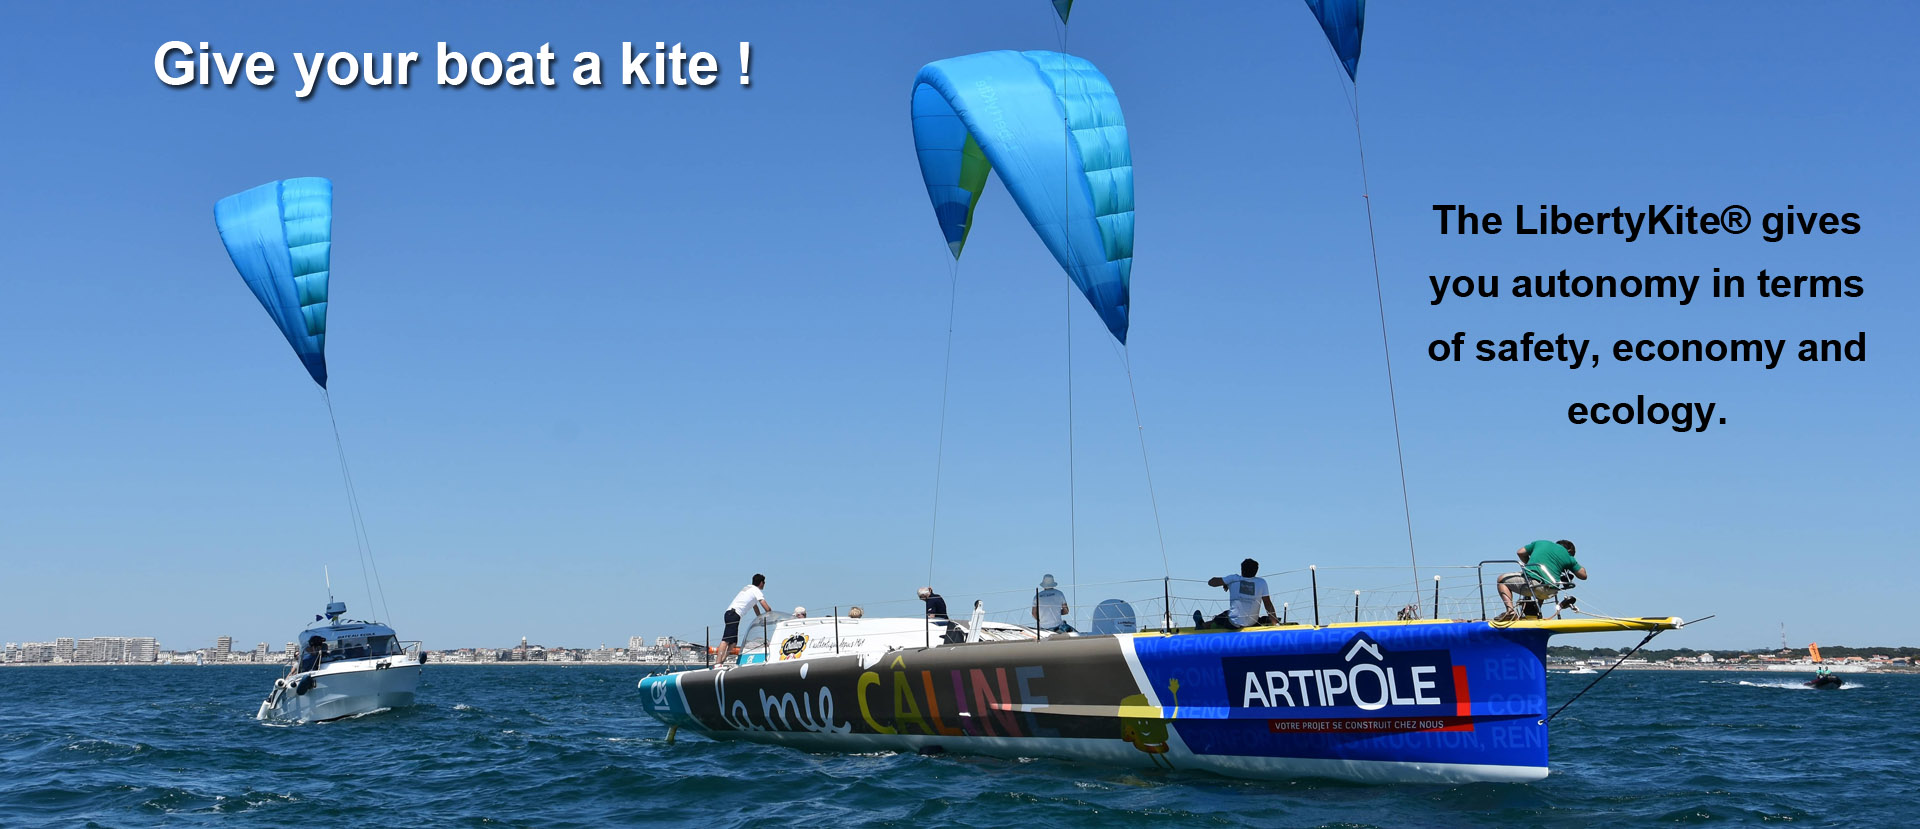 The LibertyKite® gives you autonomy in terms of safety, economy and ecology.